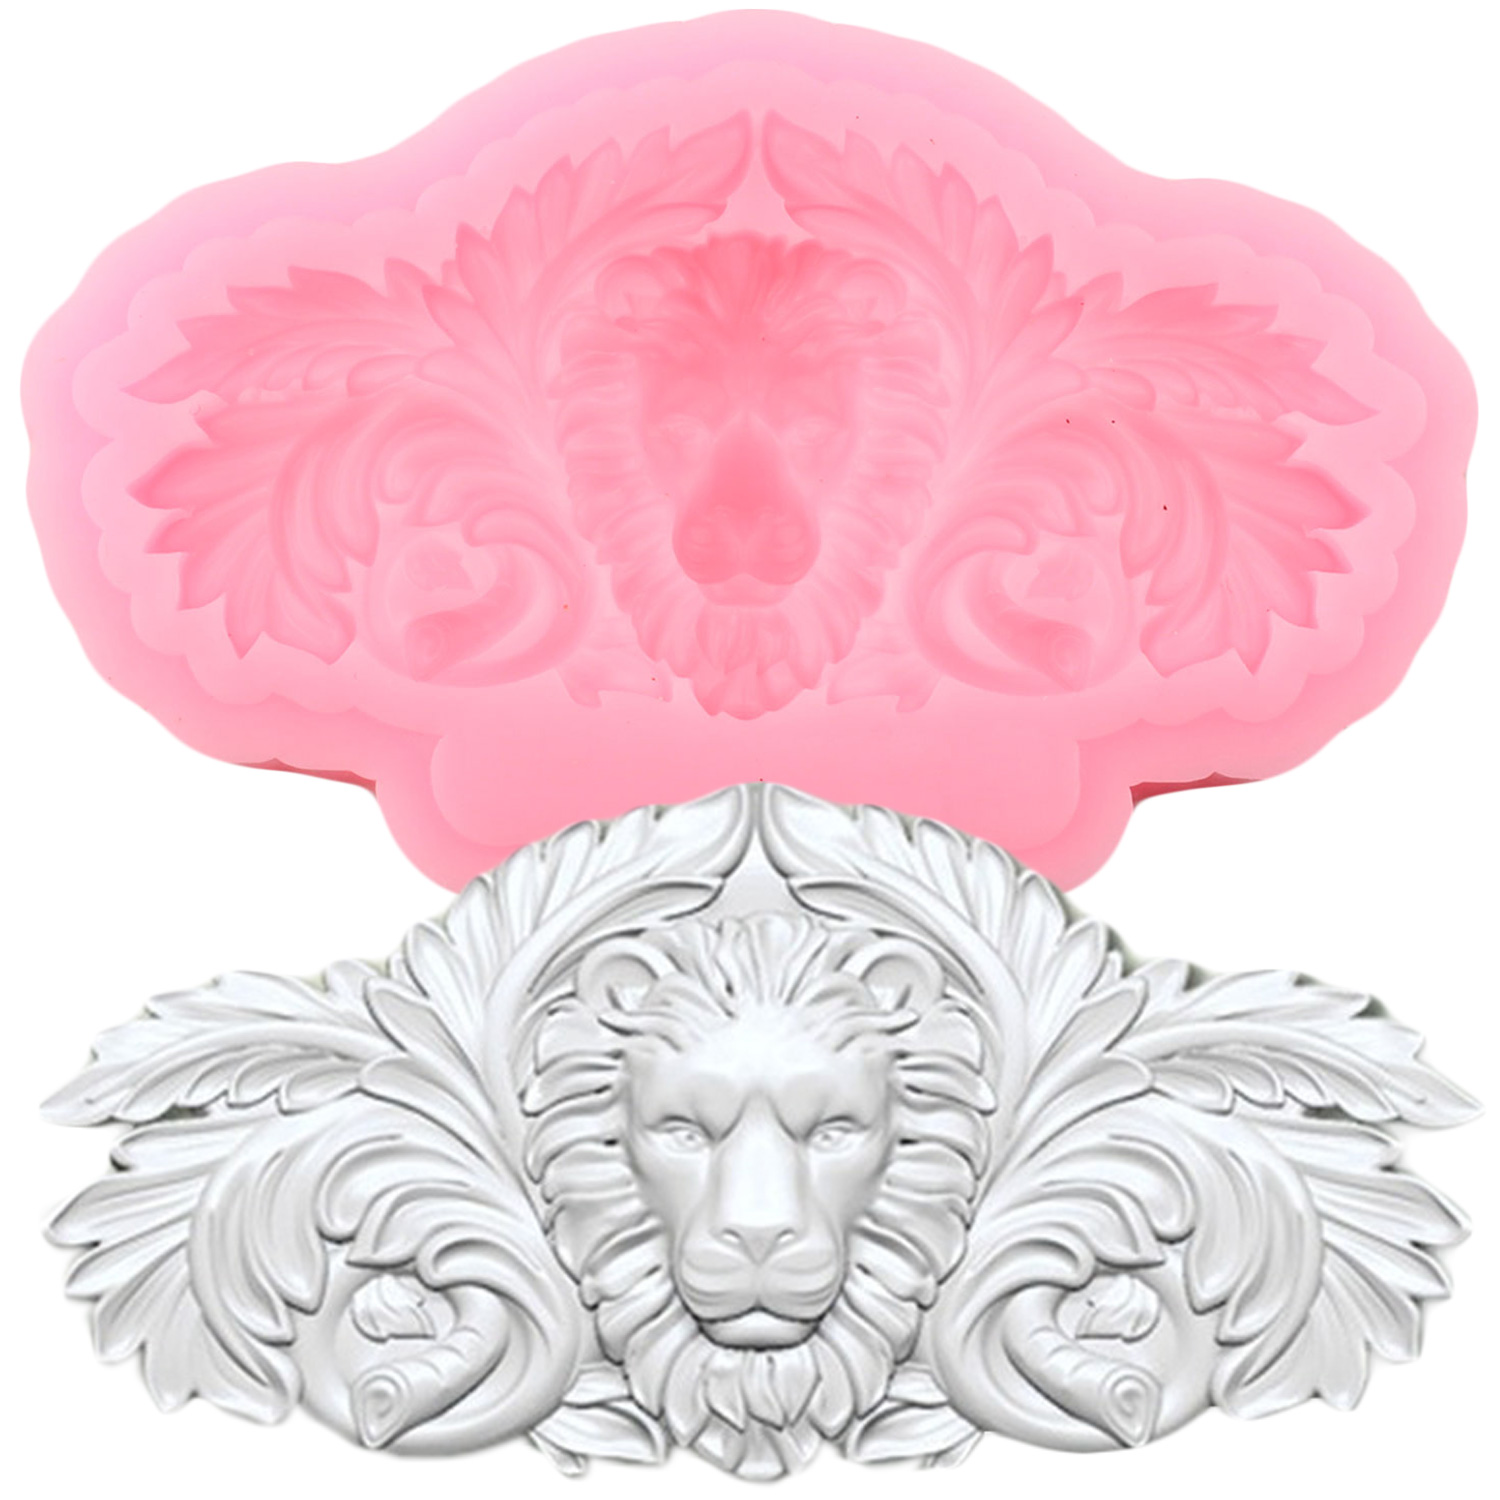 3D Lion Head Silicone Mold Animals Relief Fondant Molds Cake Decorating Tools Polymer Clay Chocolate Candy Mould|Clay Extruders|   - AliExpress